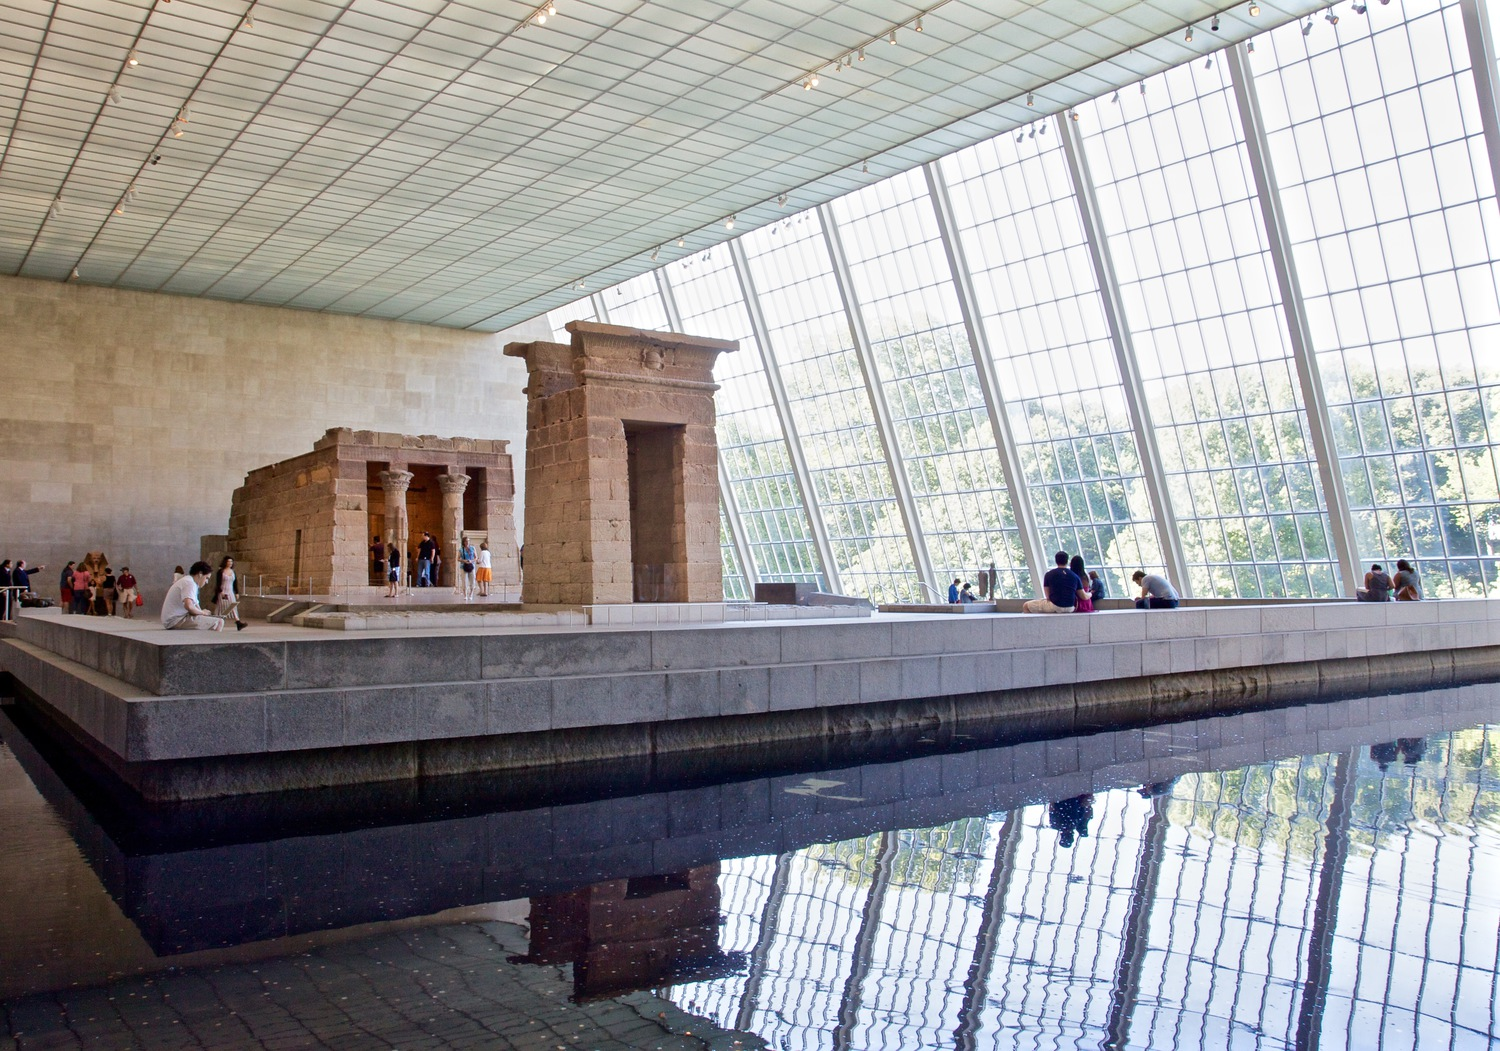 Temple of Dendur at The Met | Taken at the Temple of Dendur at the Metropolitan Museum of Art.